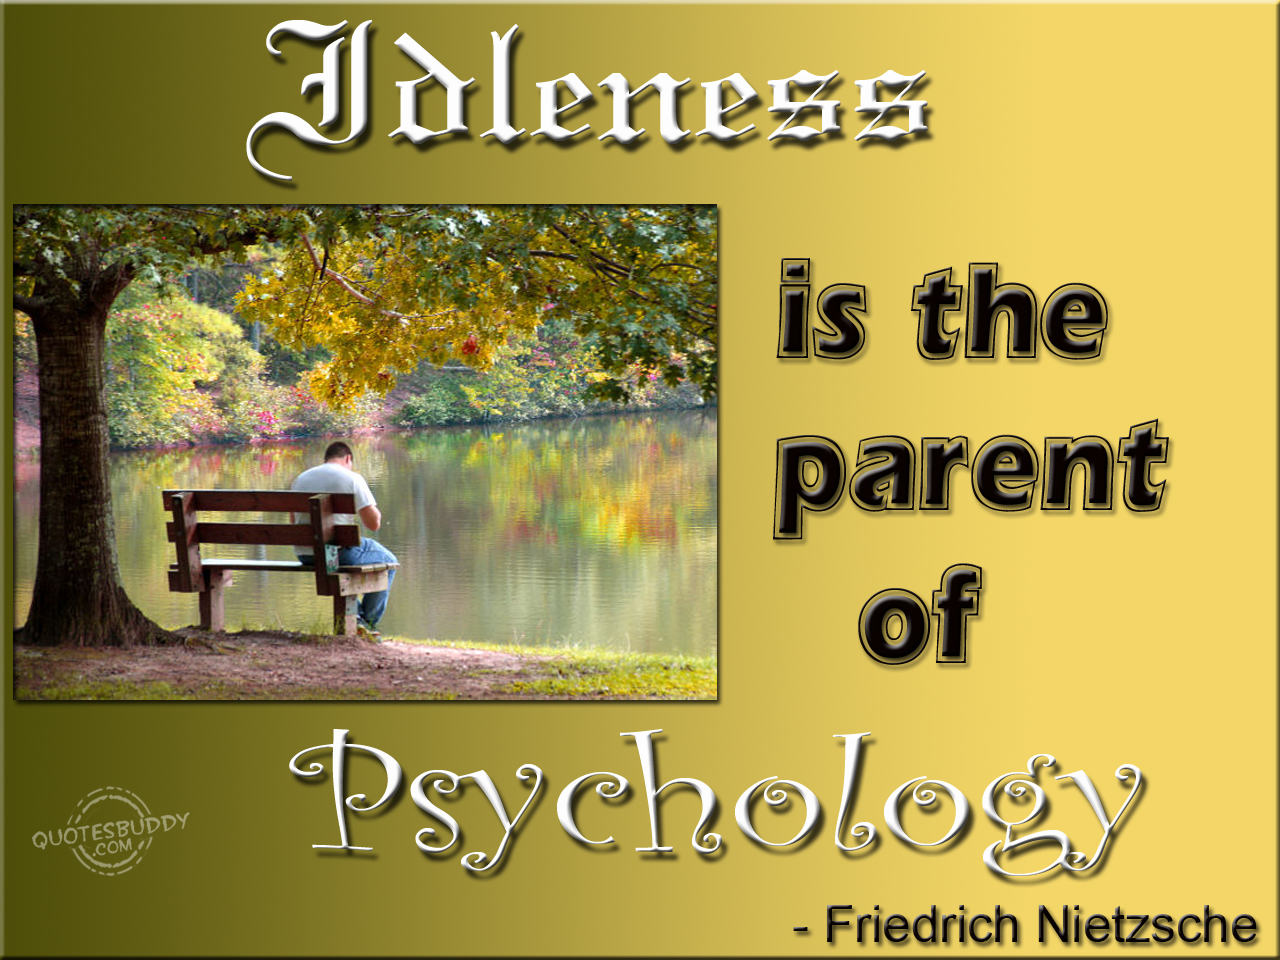 Funny Psychology Quotes. QuotesGram